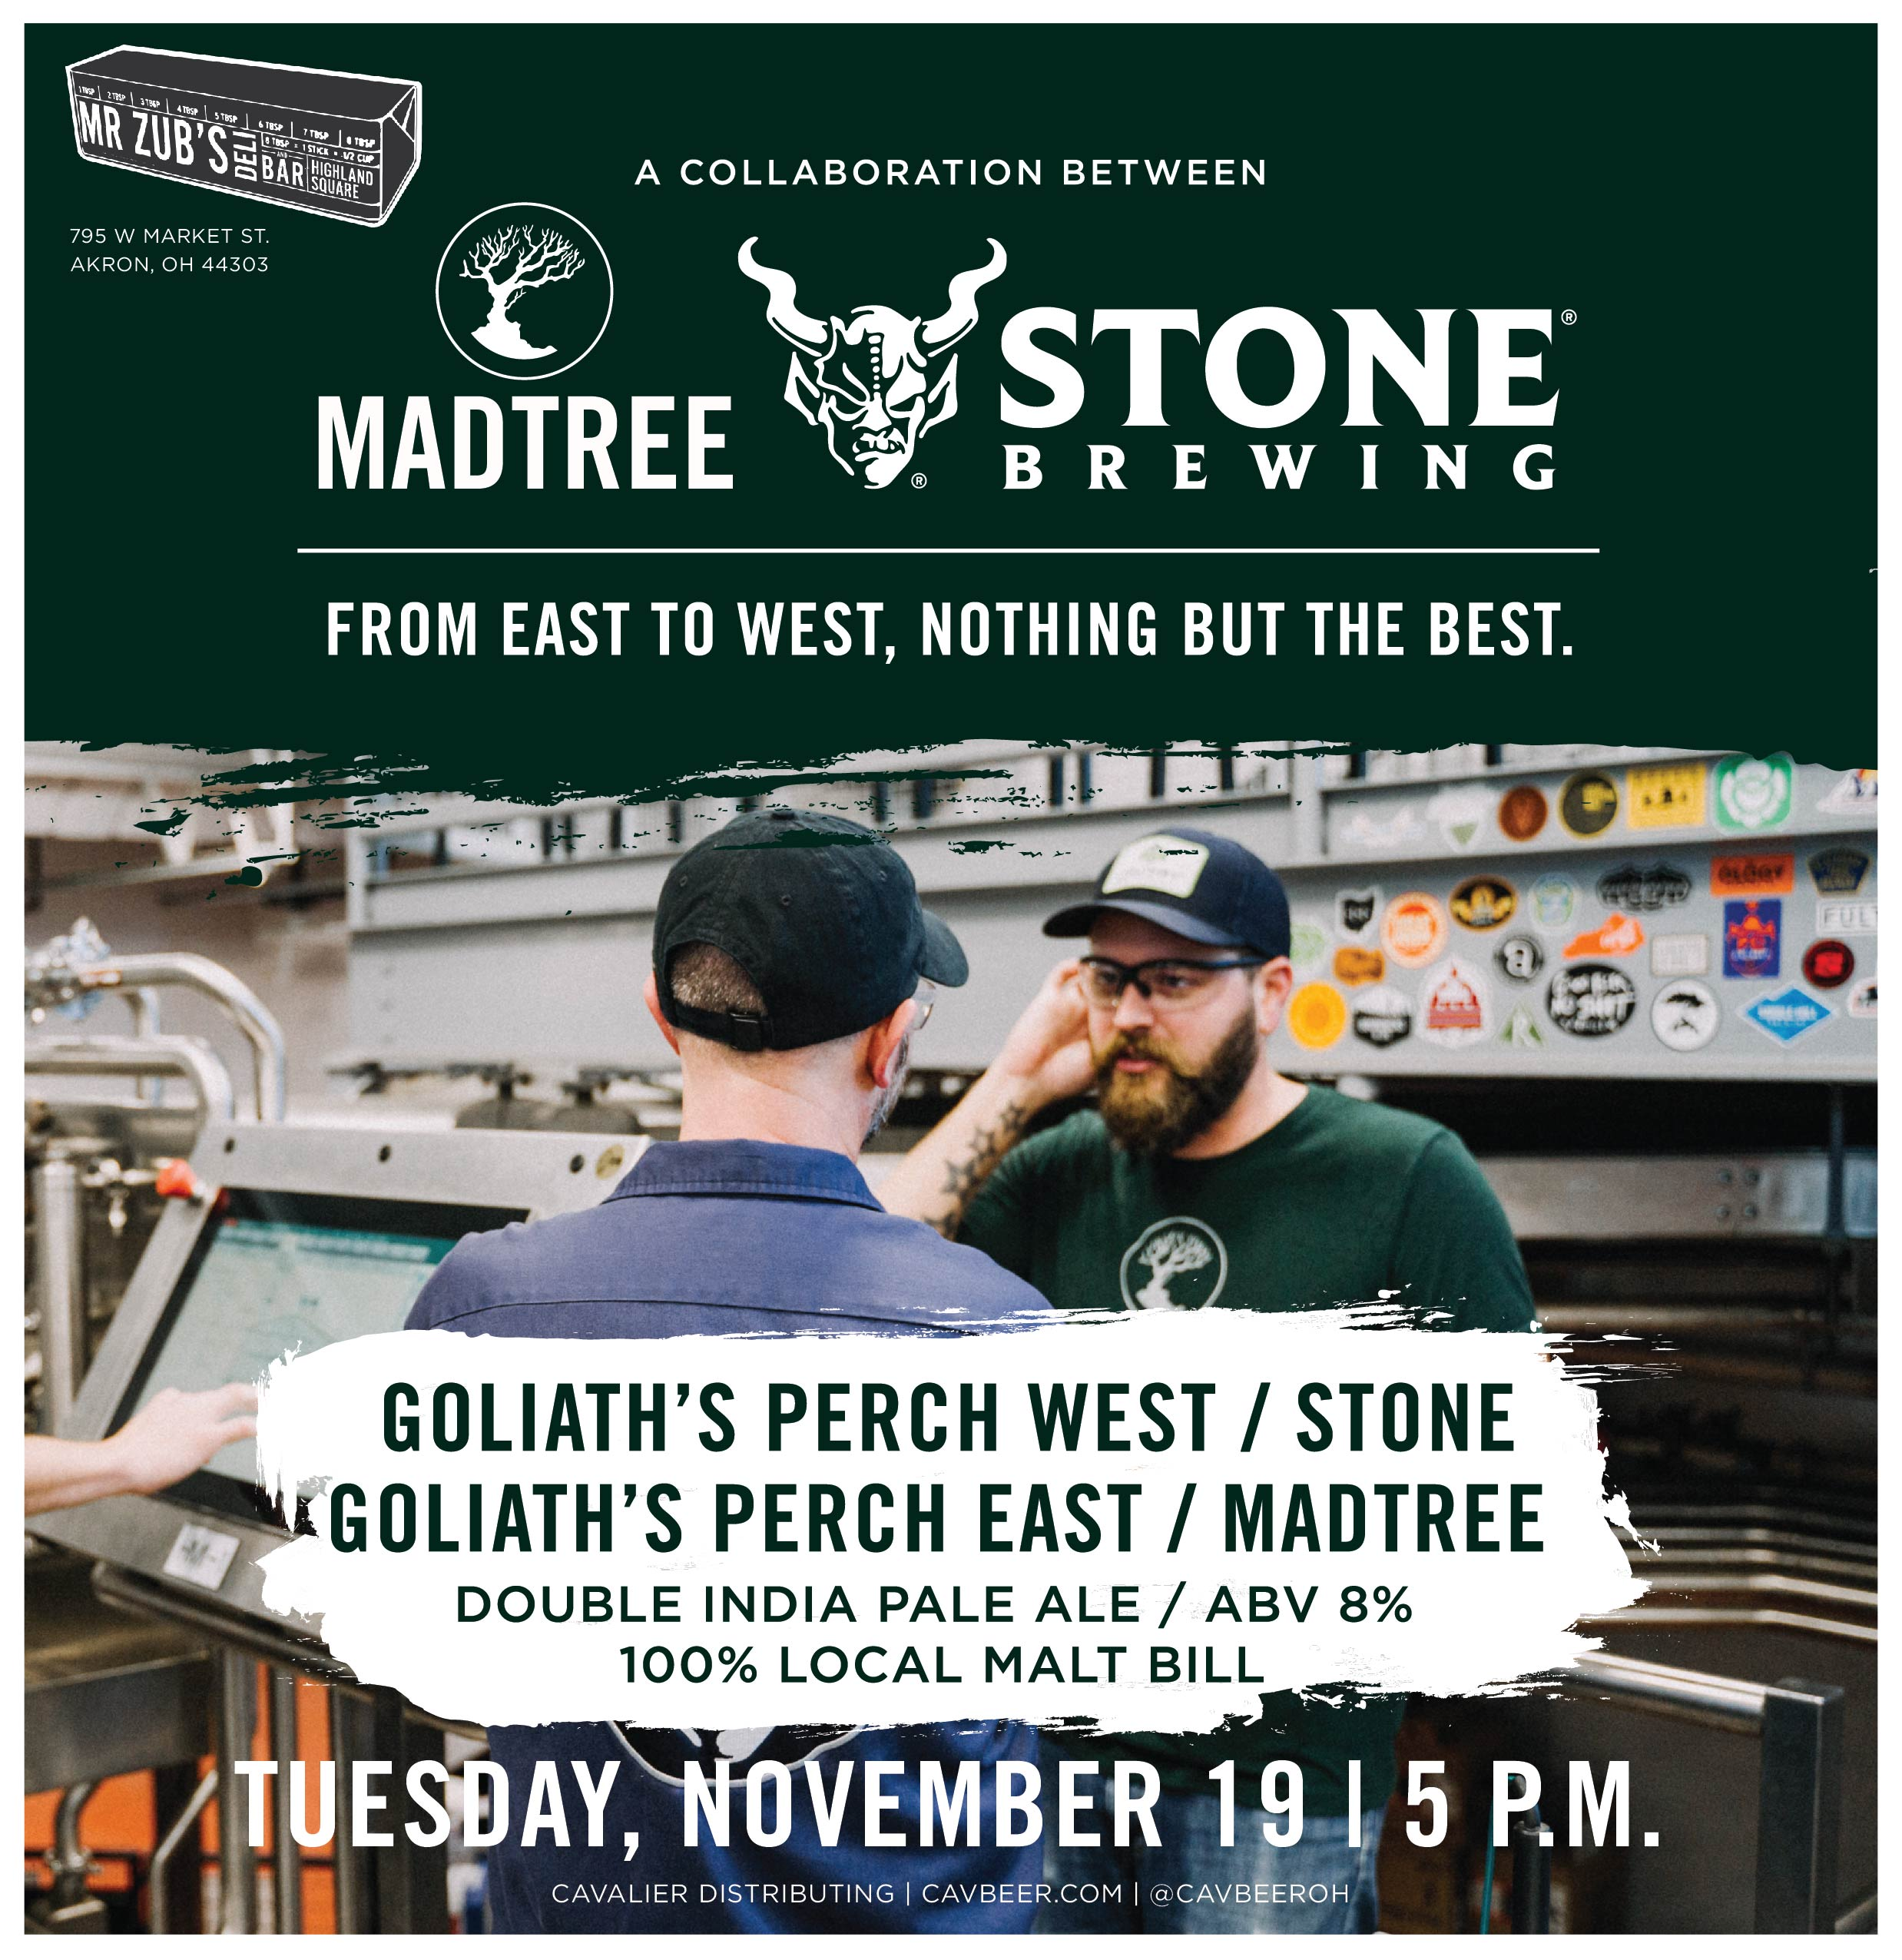 MadTree Brewing & Stone Collab @ Mr. Zub's